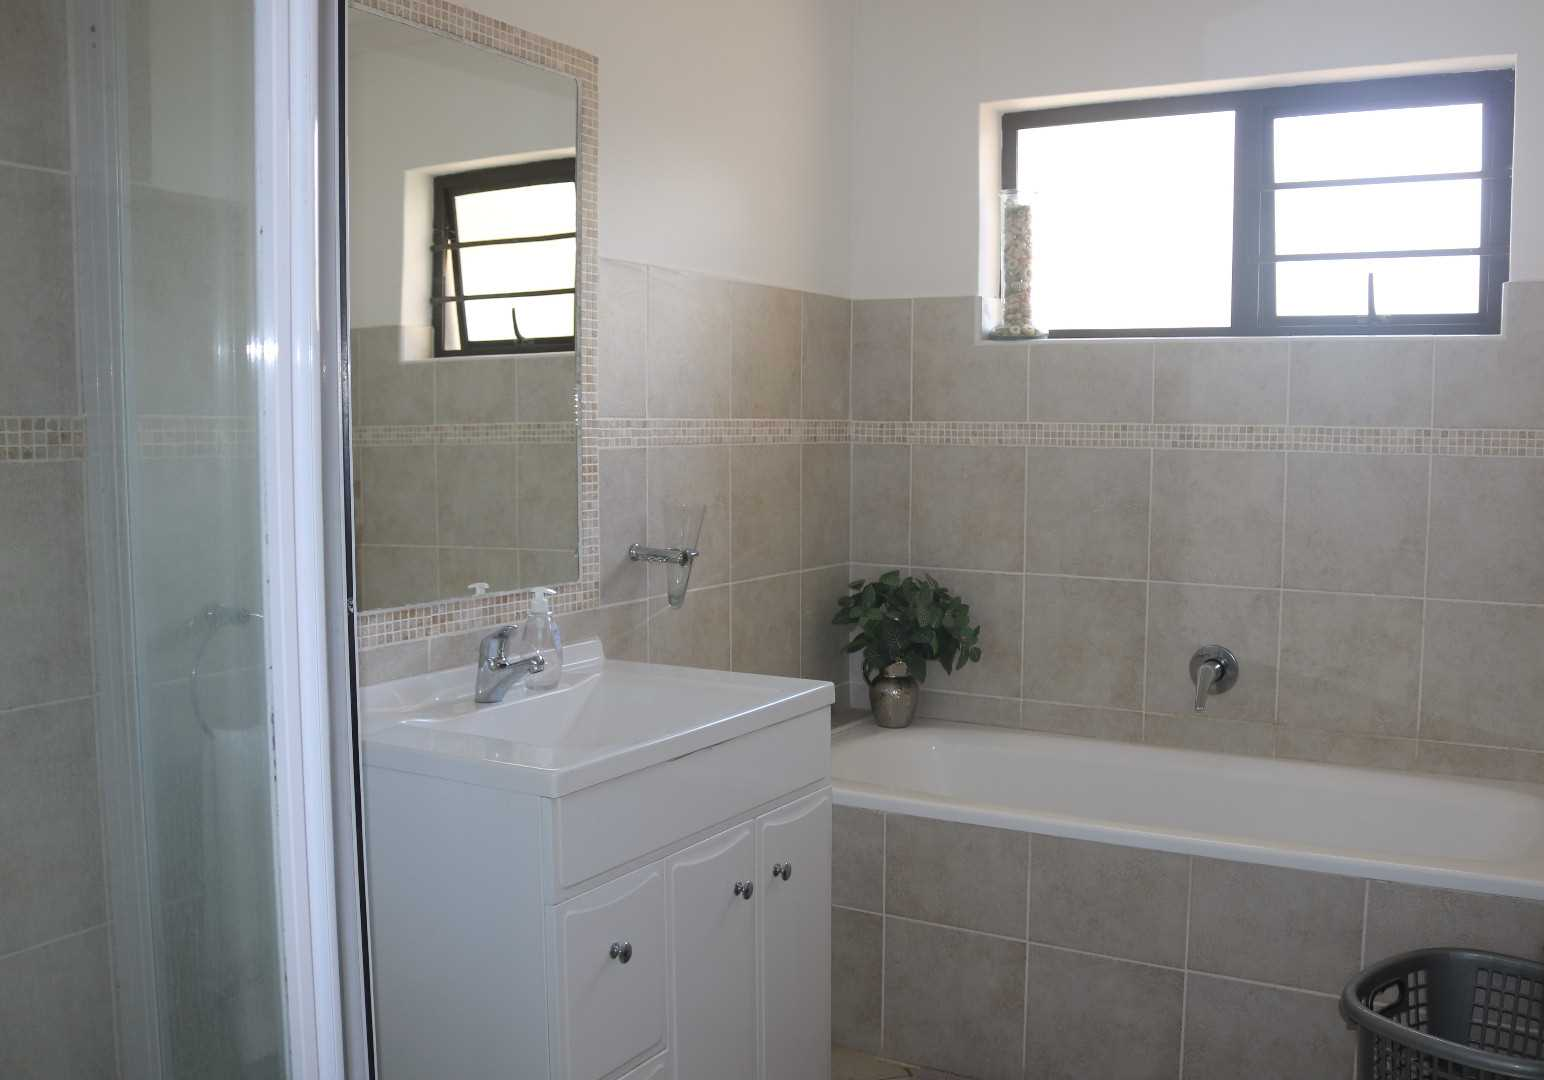 FULL MAIN BATHROOM WITH SEPARATE TOILET